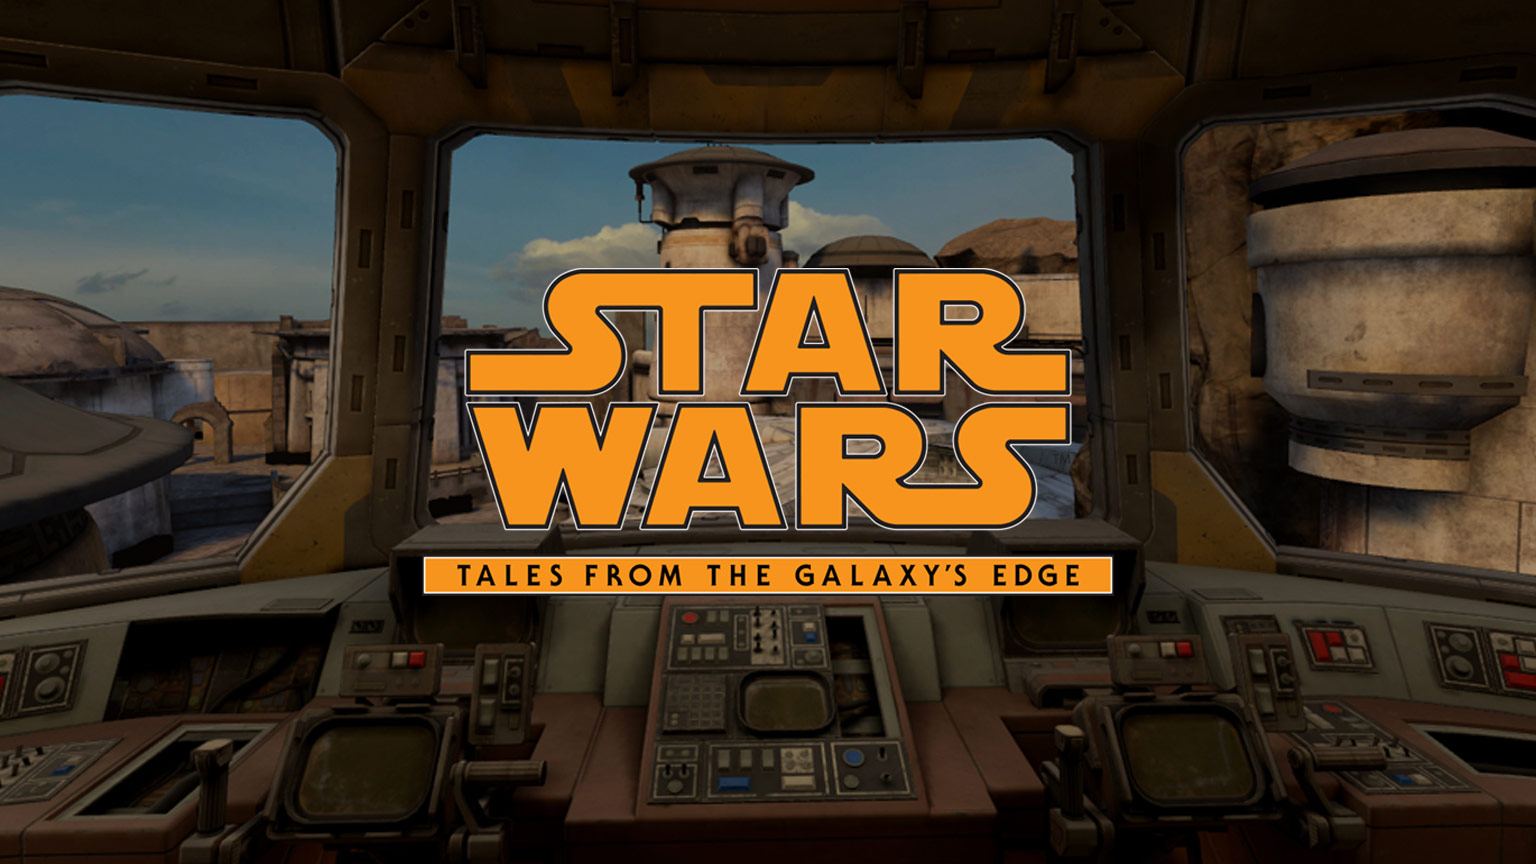 Best Oculus Quest games 2021: star wars tales from the galaxy's edge